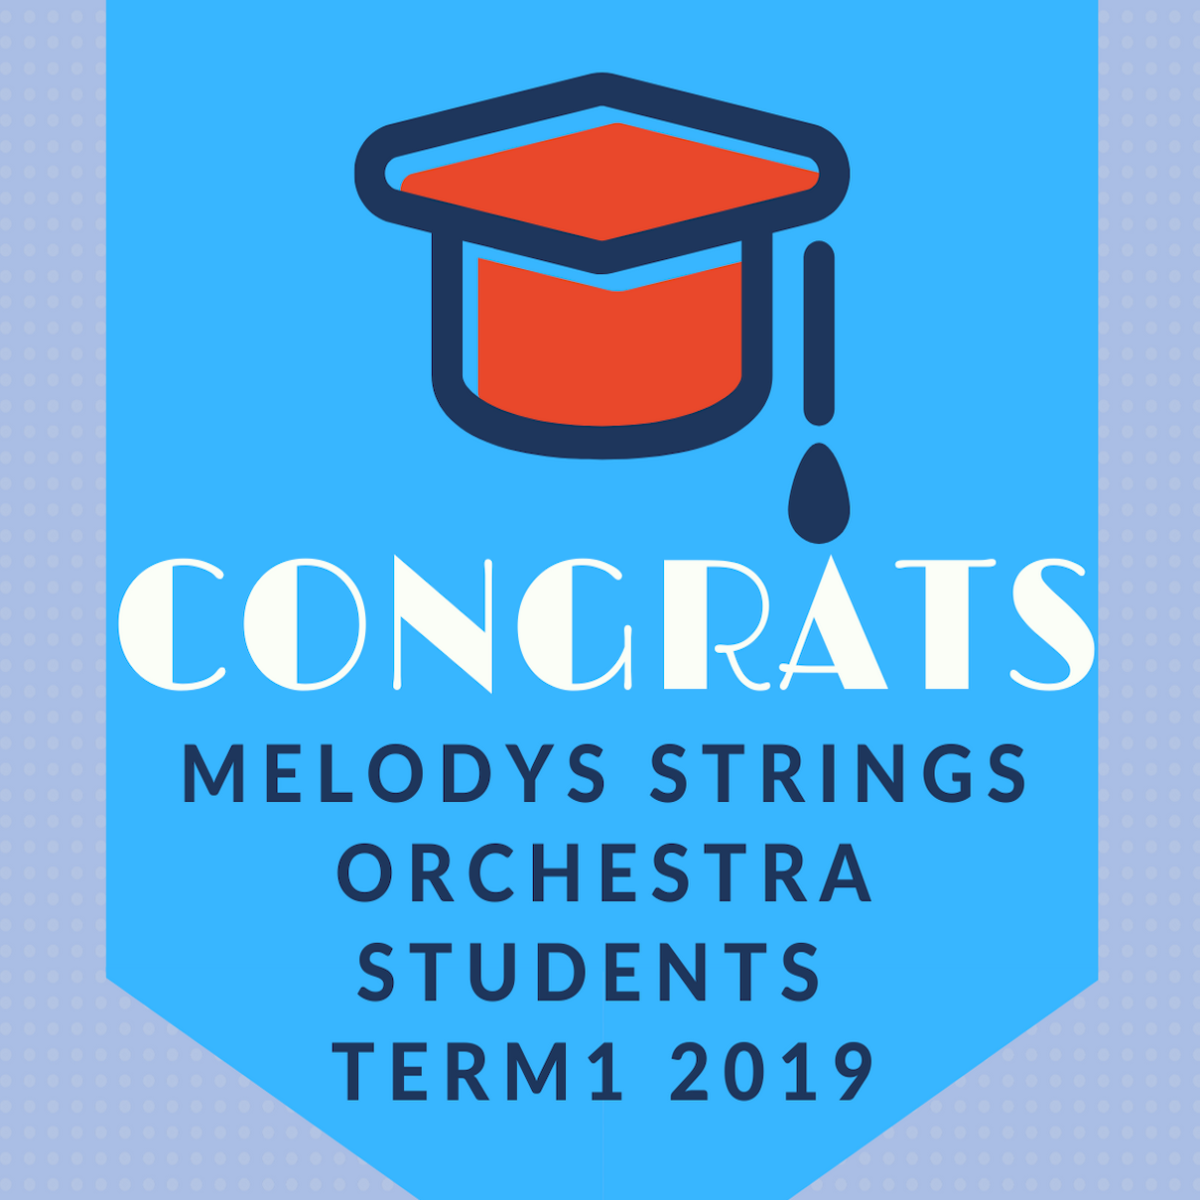 Orchestra Students Term 1 2019